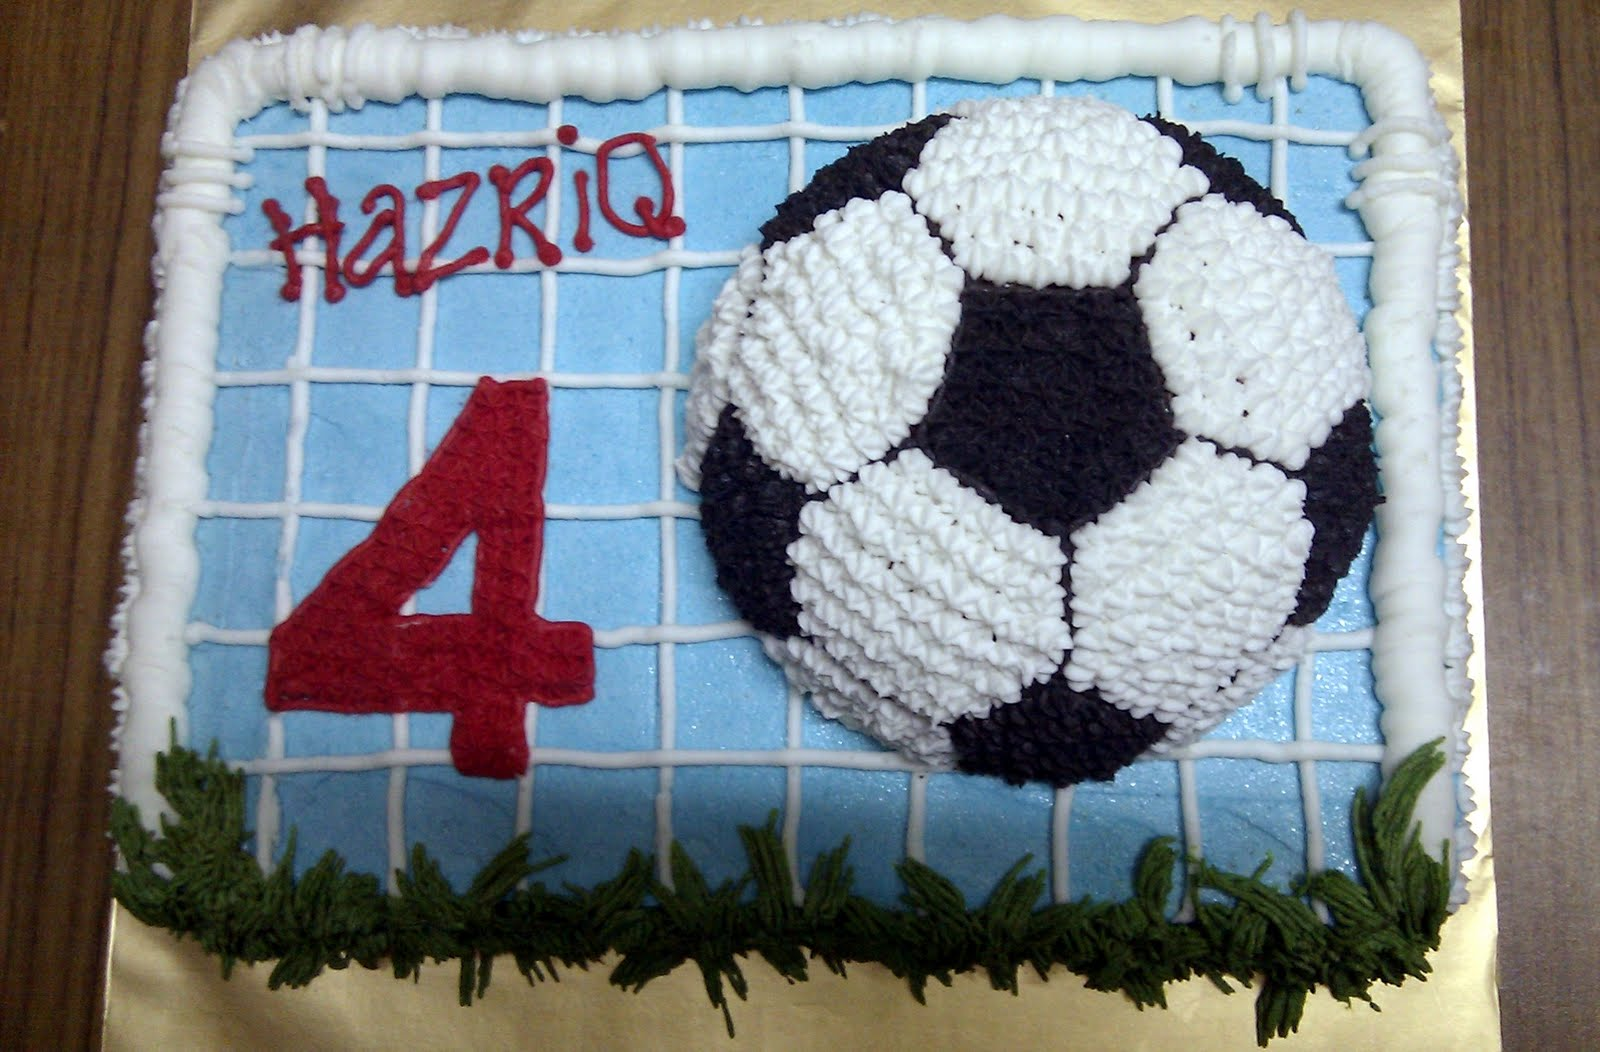 Heavenly Slice By Analiza Another Round Of Soccer Ball Cake